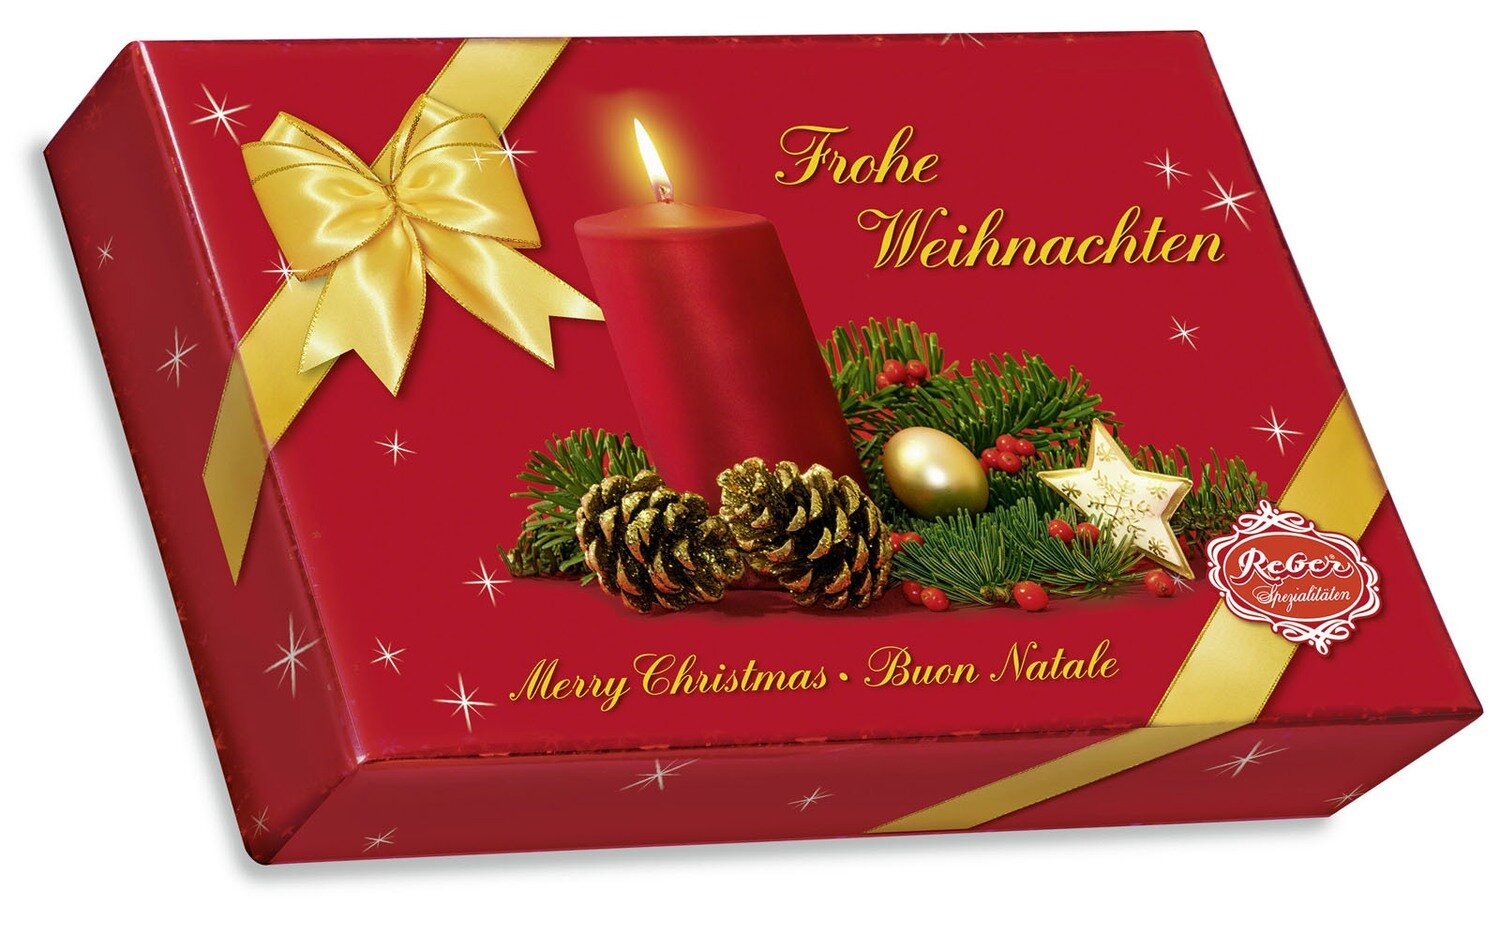 Reber Marzipan  Spcialty Gift Box with Christmas Decorative Box, 380g/13.51 Oz